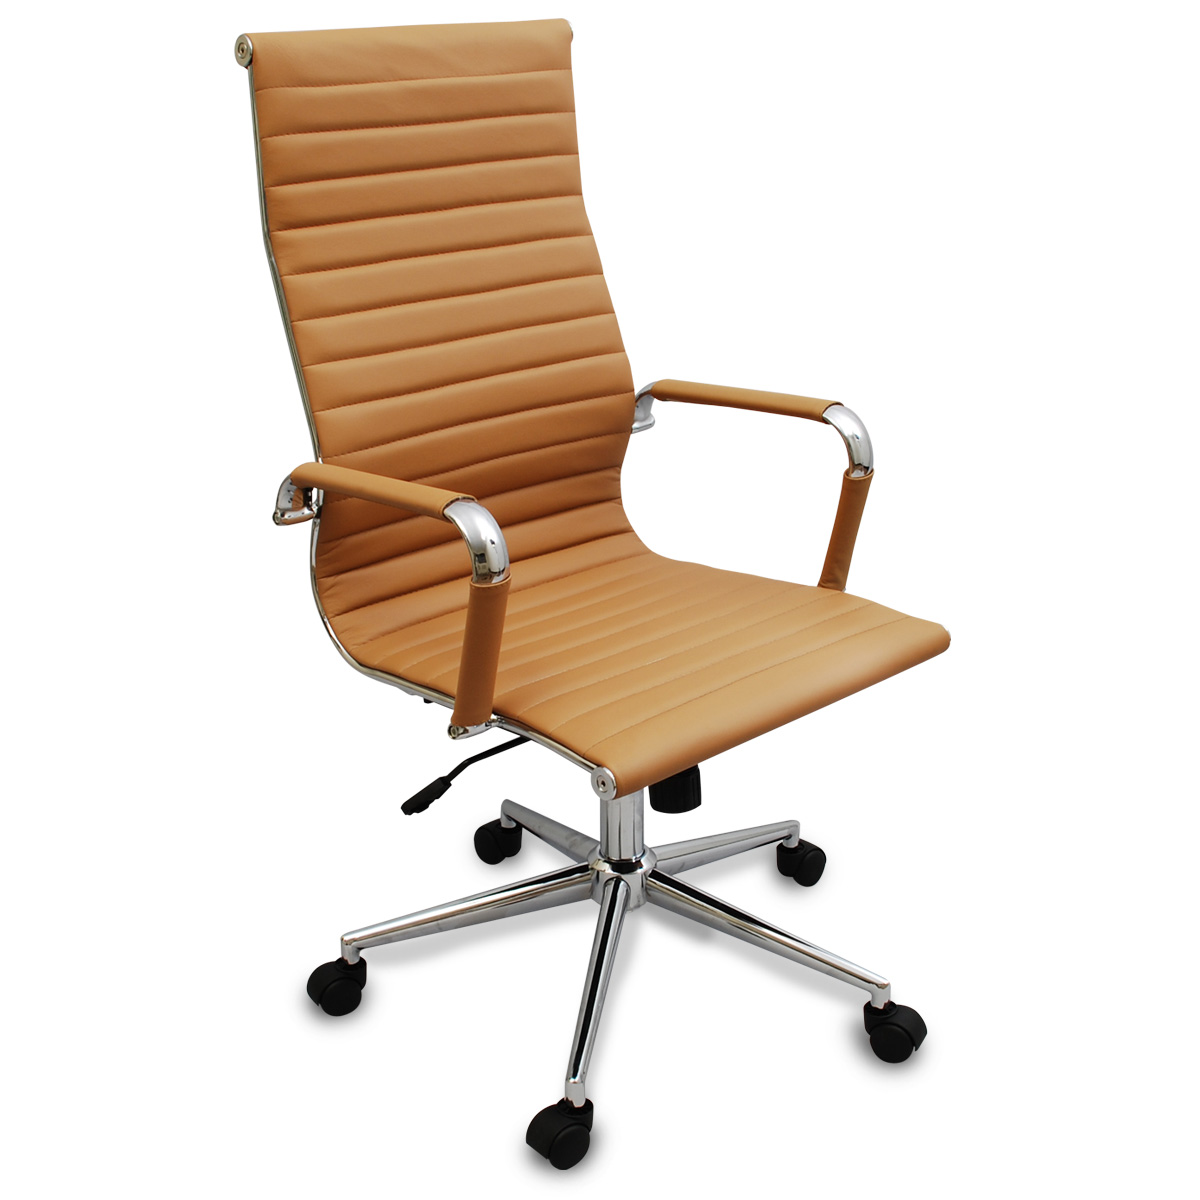 desk chair modern shampoo bowl combo new tan executive ergonomic ribbed high back